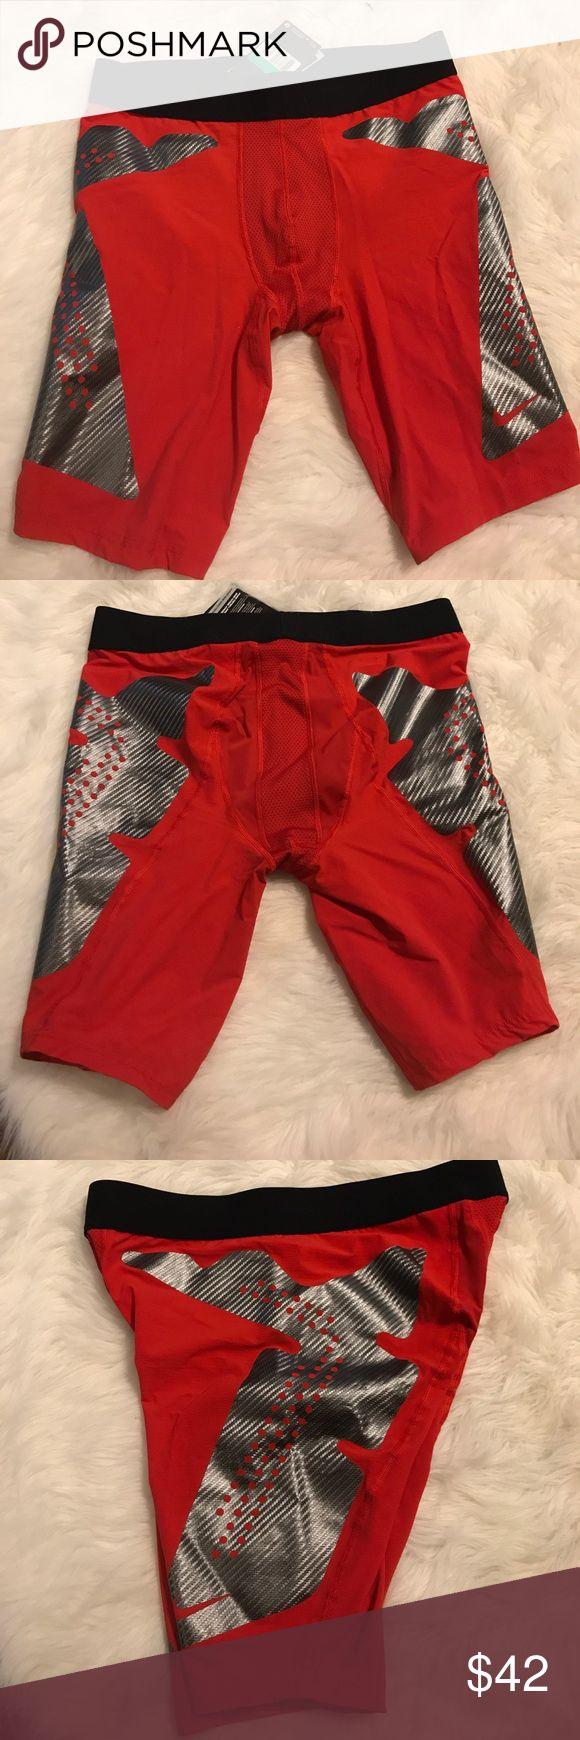 NWT Nike pro combat compression shorts Never worn tags came off in storage Nike Shorts Athletic